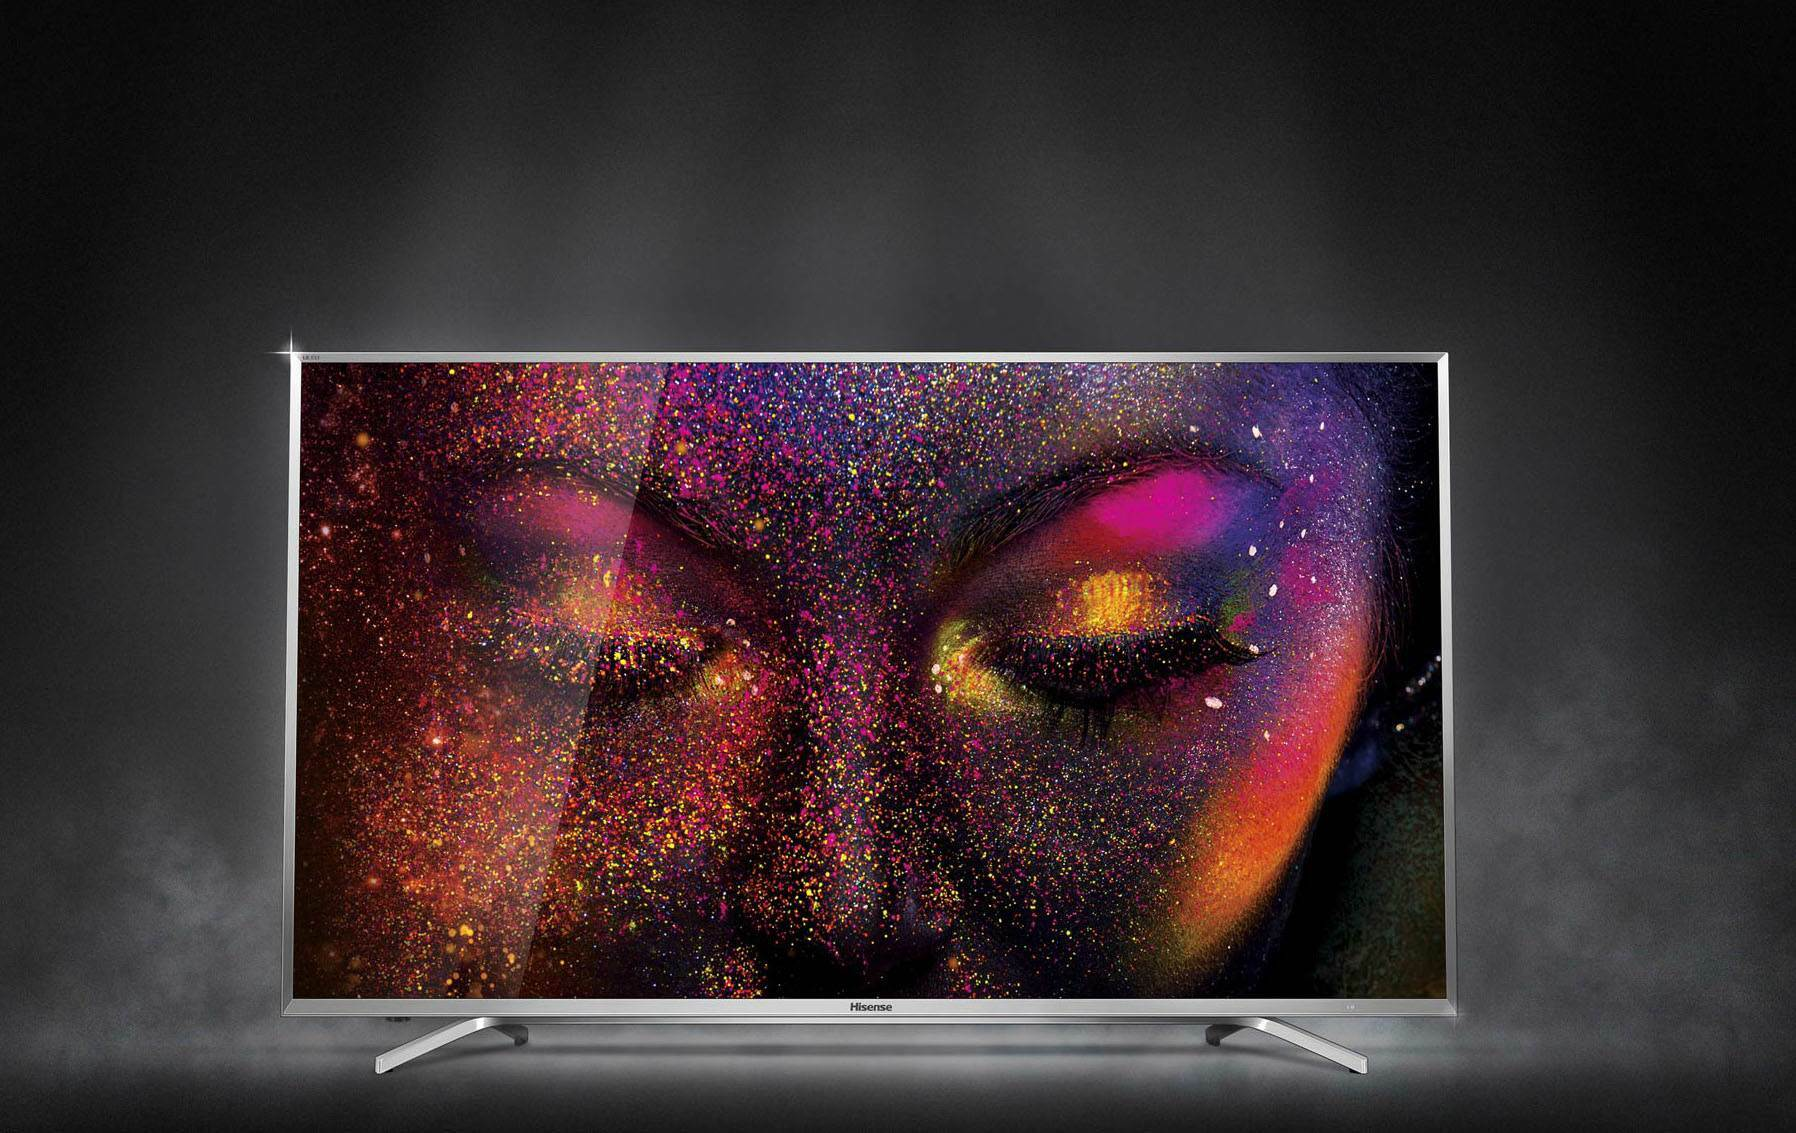 The best TVs of 2017 the complete TV buyers guide